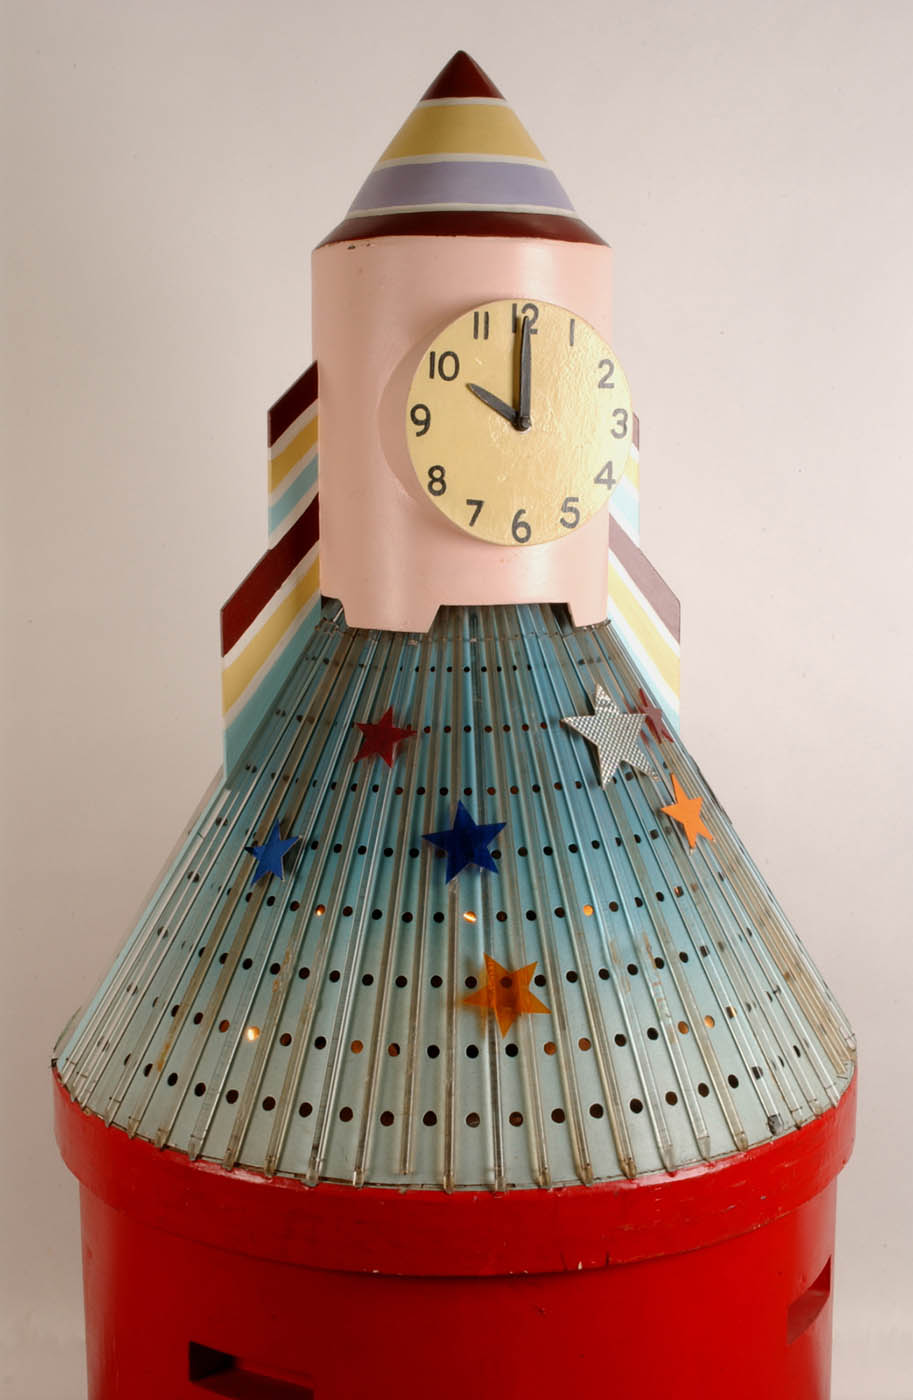 A large clock in the shape of a rocket with a red cylindrical wooden base with a light blue perforated metal skirt covered in vertical plastic rods, a light pink wooden trunk and painted striped cone top. - click to view larger image